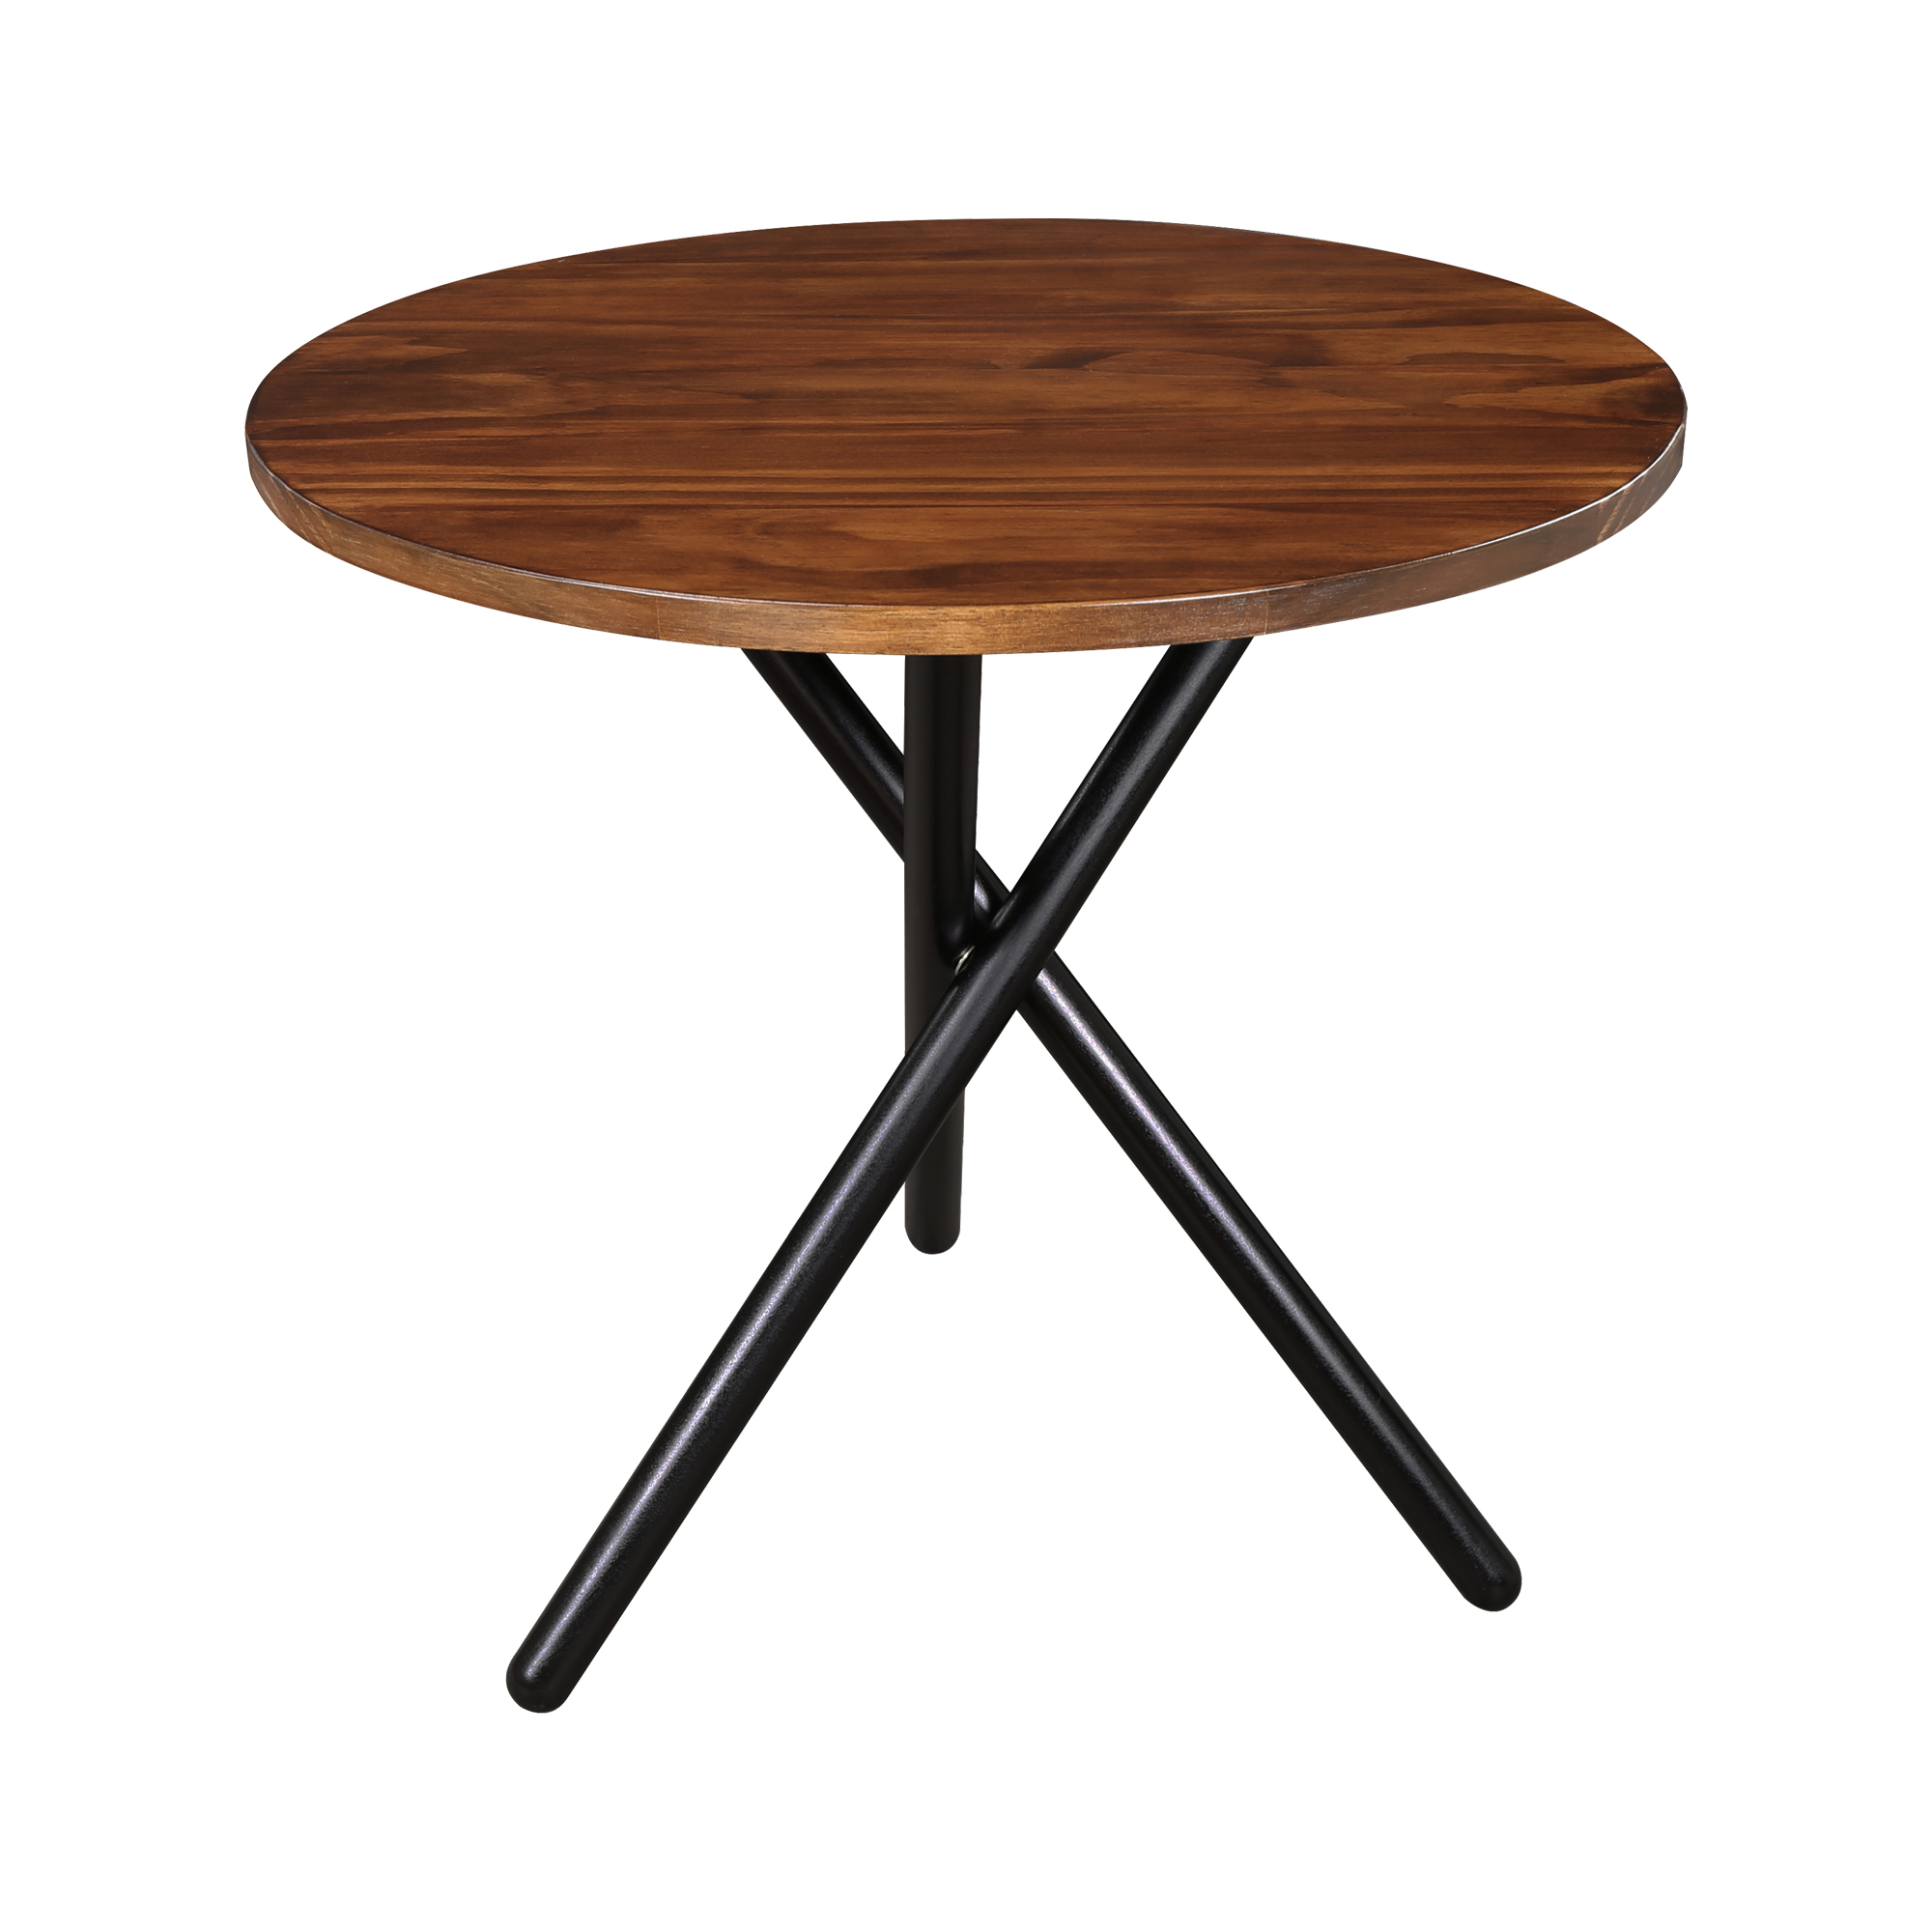 cadenza modern end table casual home tables real wood coffee sets riverside promenade desk pottery barn french country laura ashley furnishings console next steel pipe legs slim